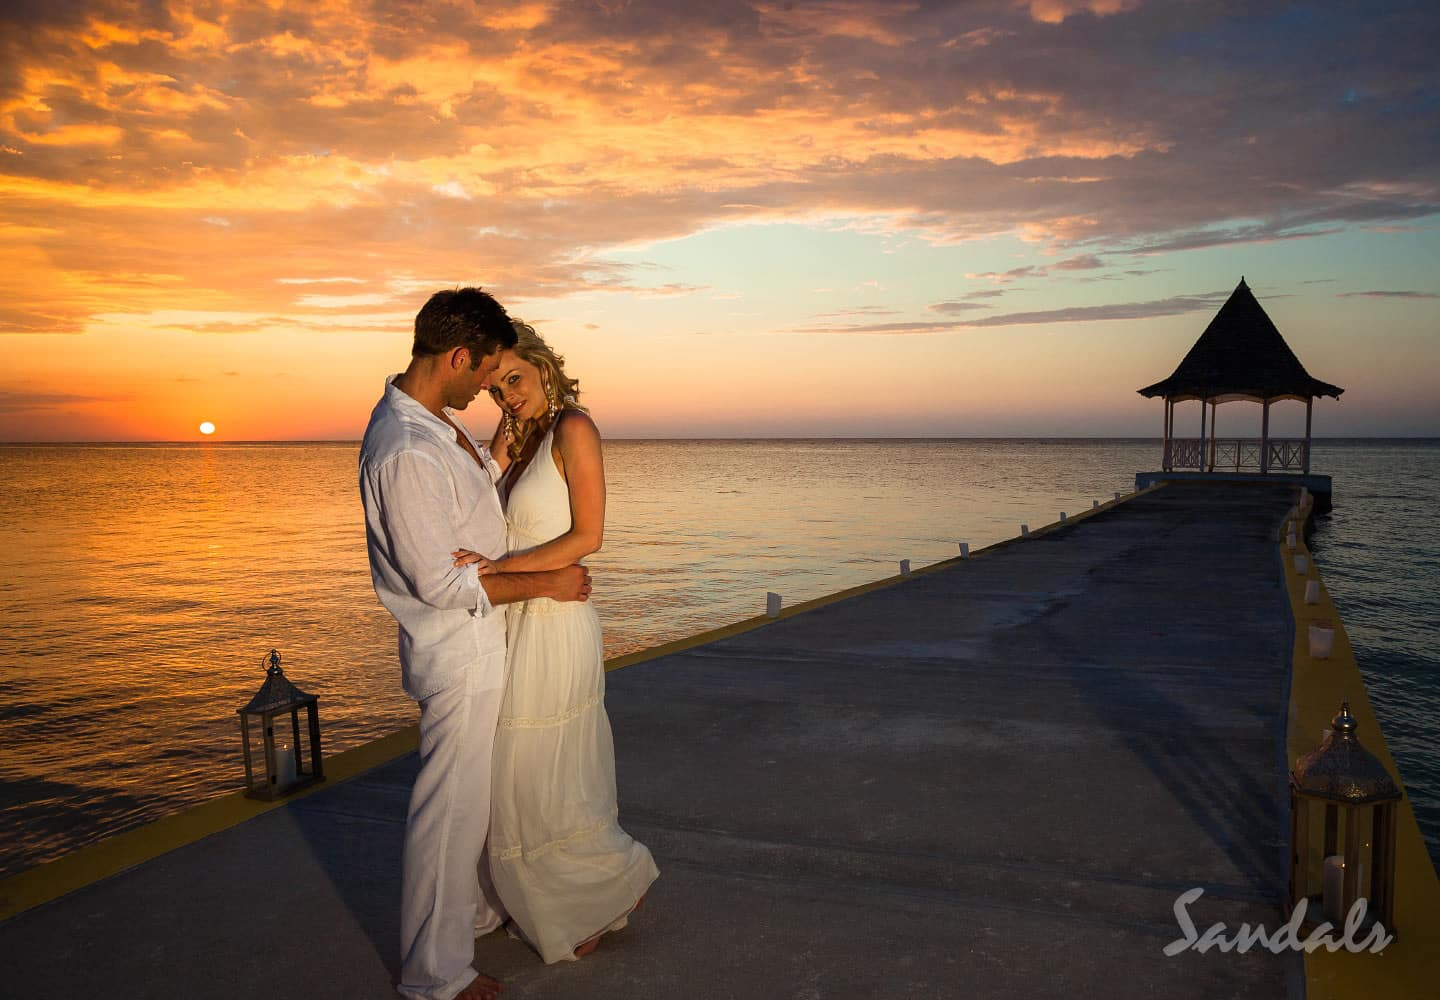 couple standing on a pier at sunset at the Sandals Montego Bay resort in Jamaica, perfect location for luxury all inclusive vacation packages, booked by Southern Travel Agency Augusta, GA